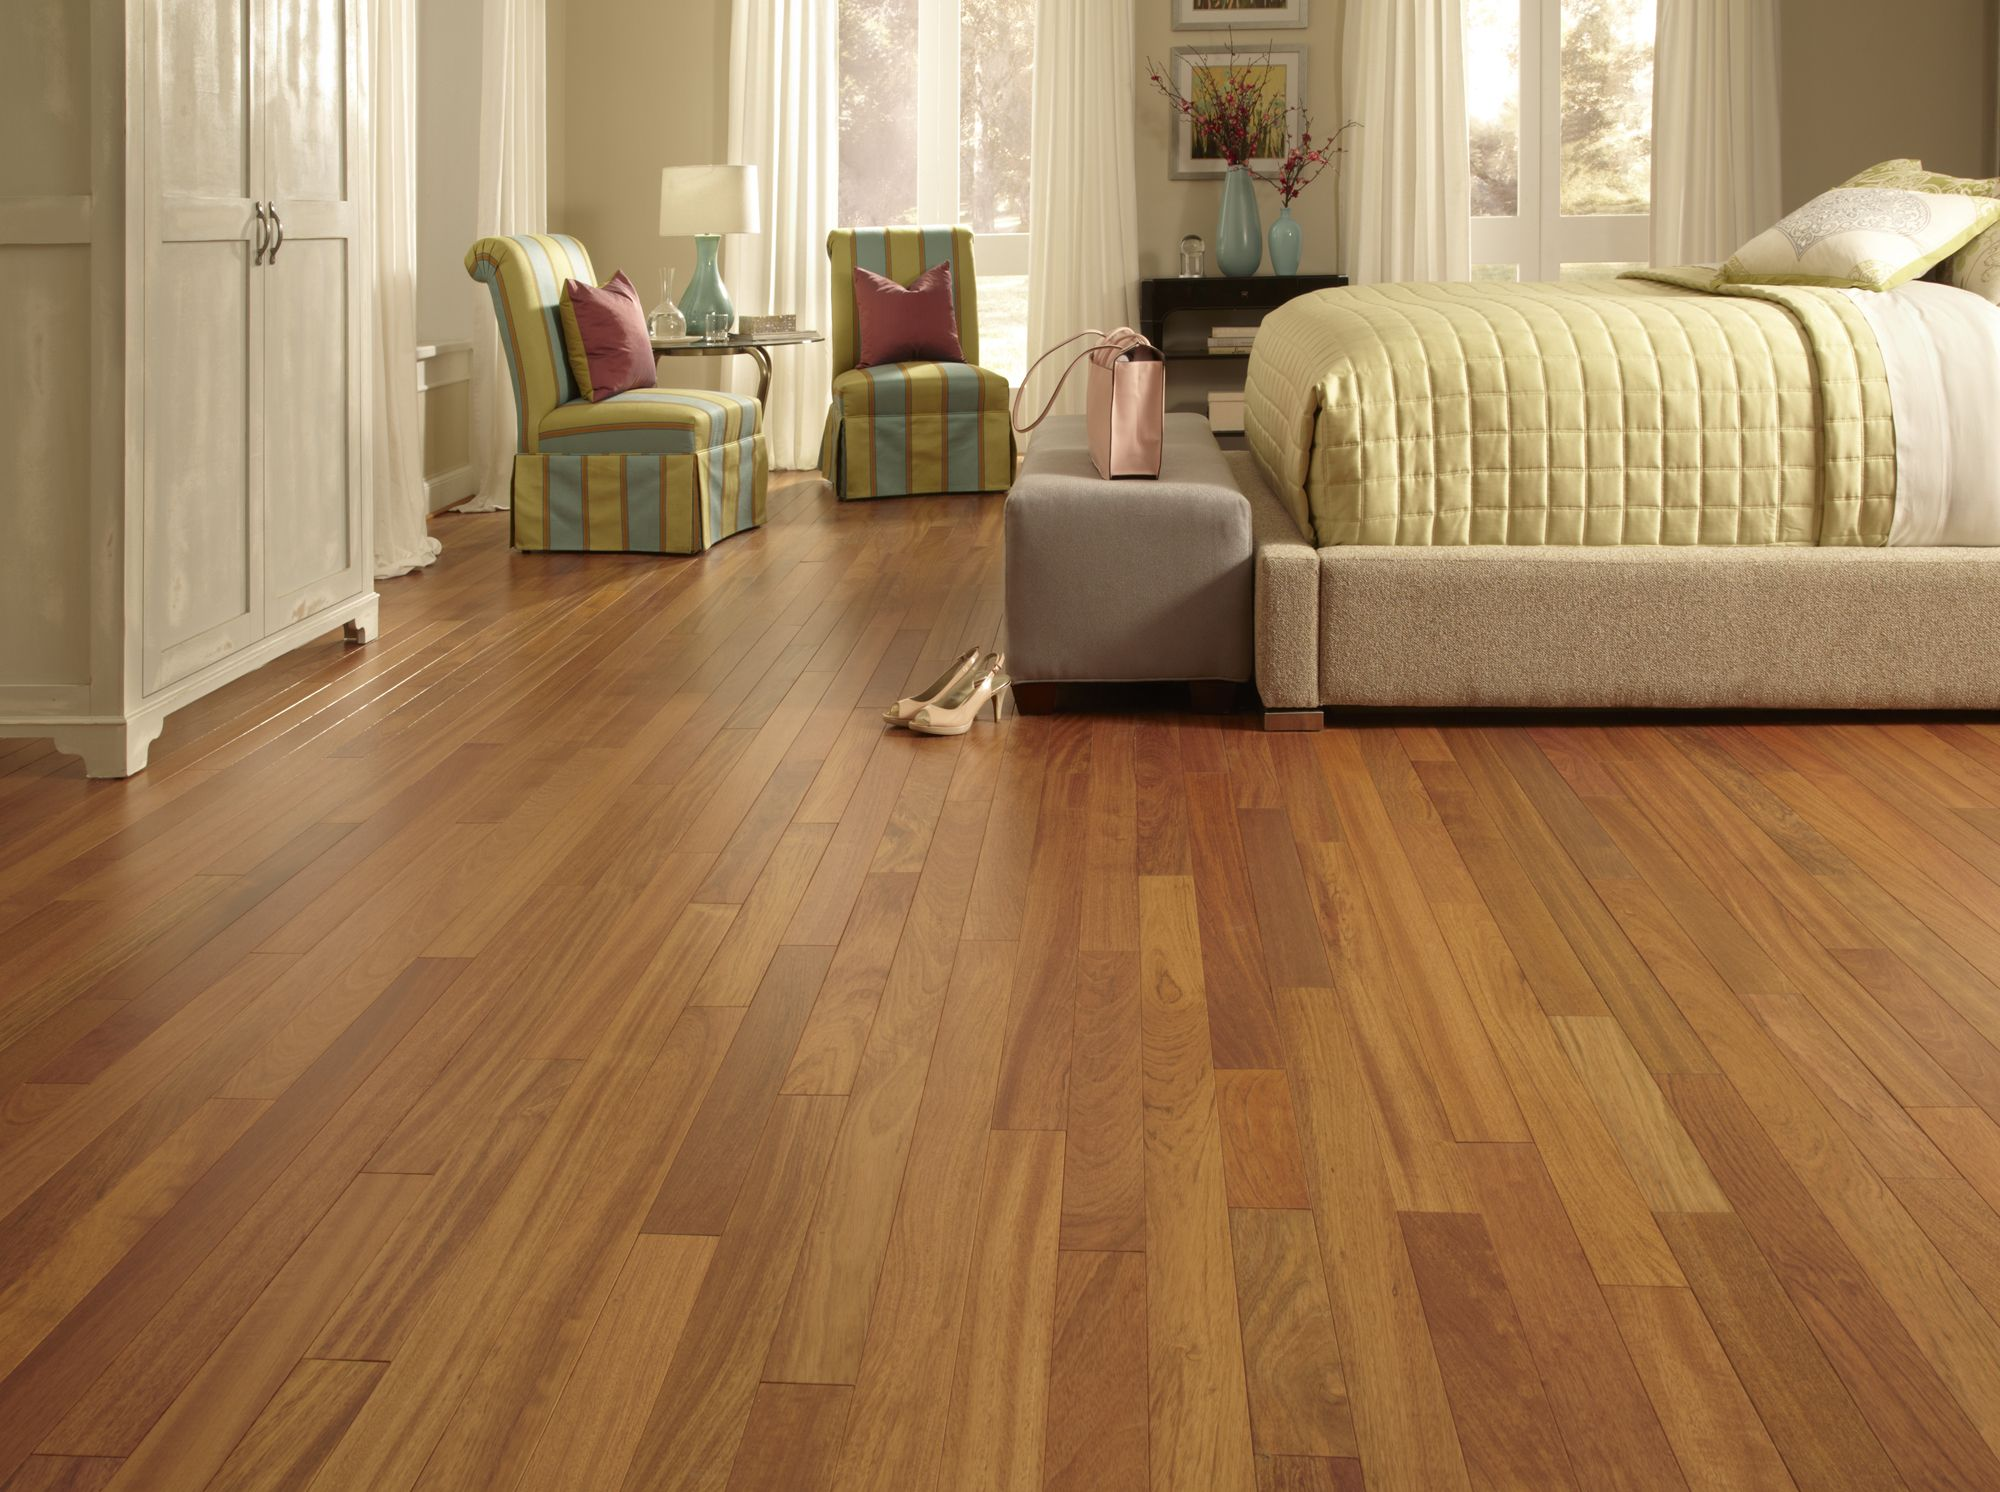 Matte Finished Floors Like Brazilian Cherry Bring European